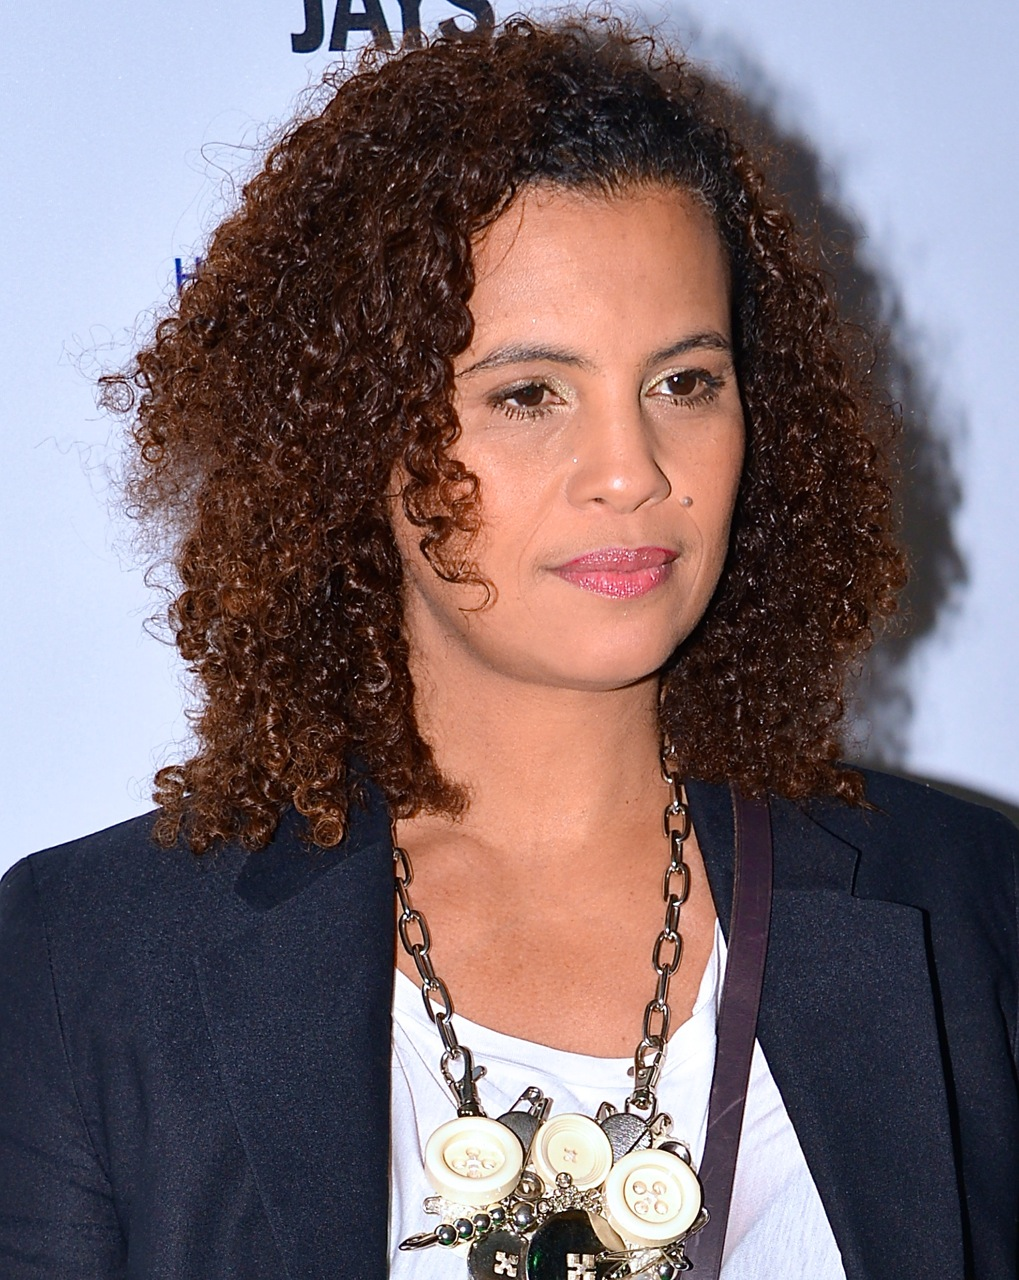 The 53-year old daughter of father (?) and mother(?), 173 cm tall Neneh Cherry in 2017 photo